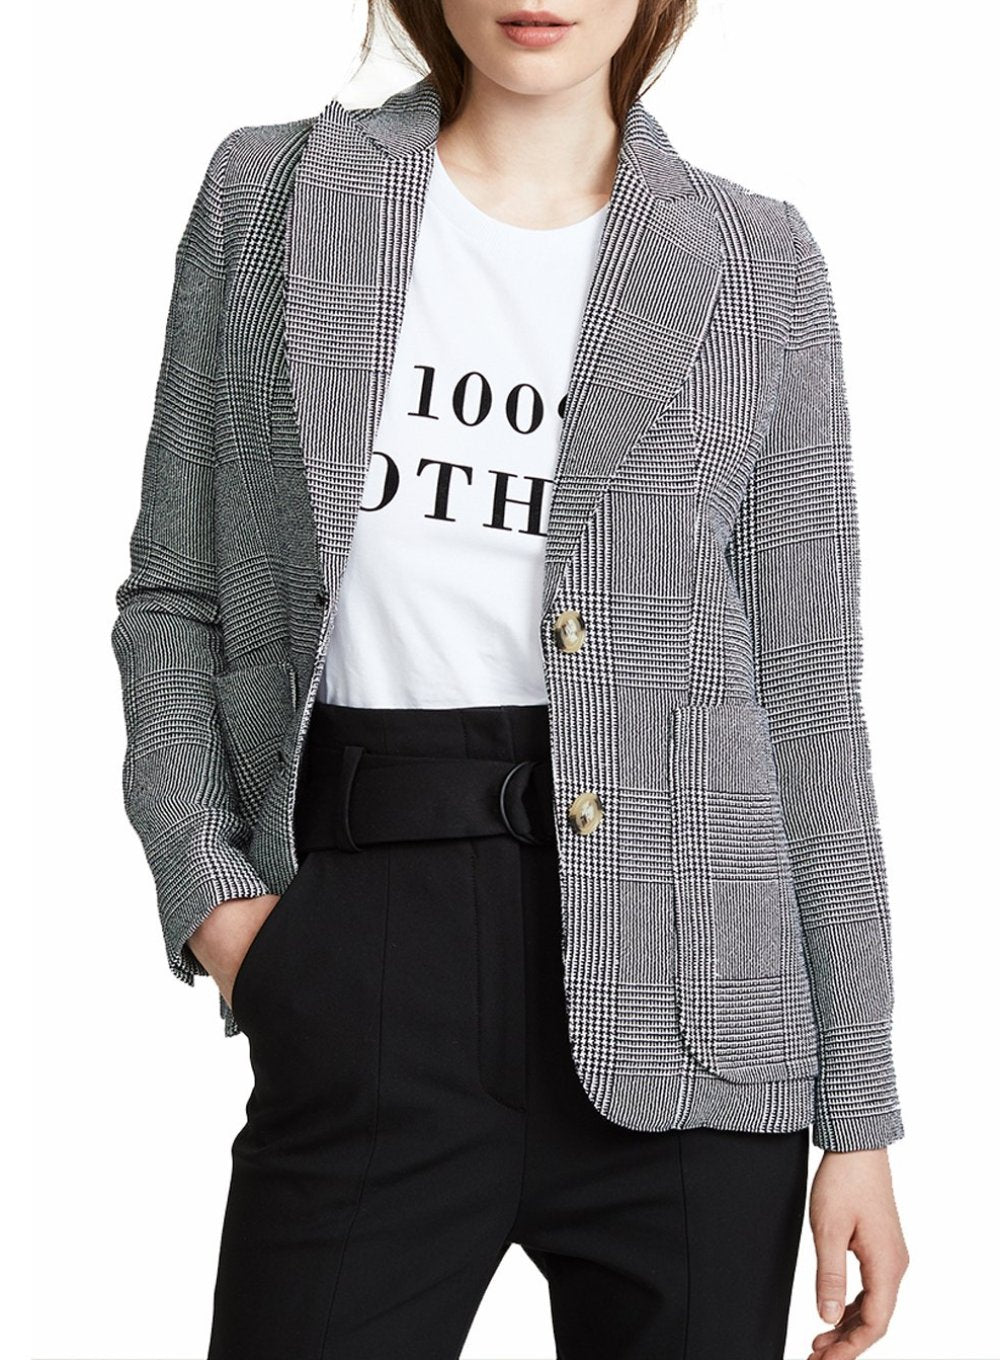 SMYTHE | Portrait Neck Blazer in Black and White Plaid